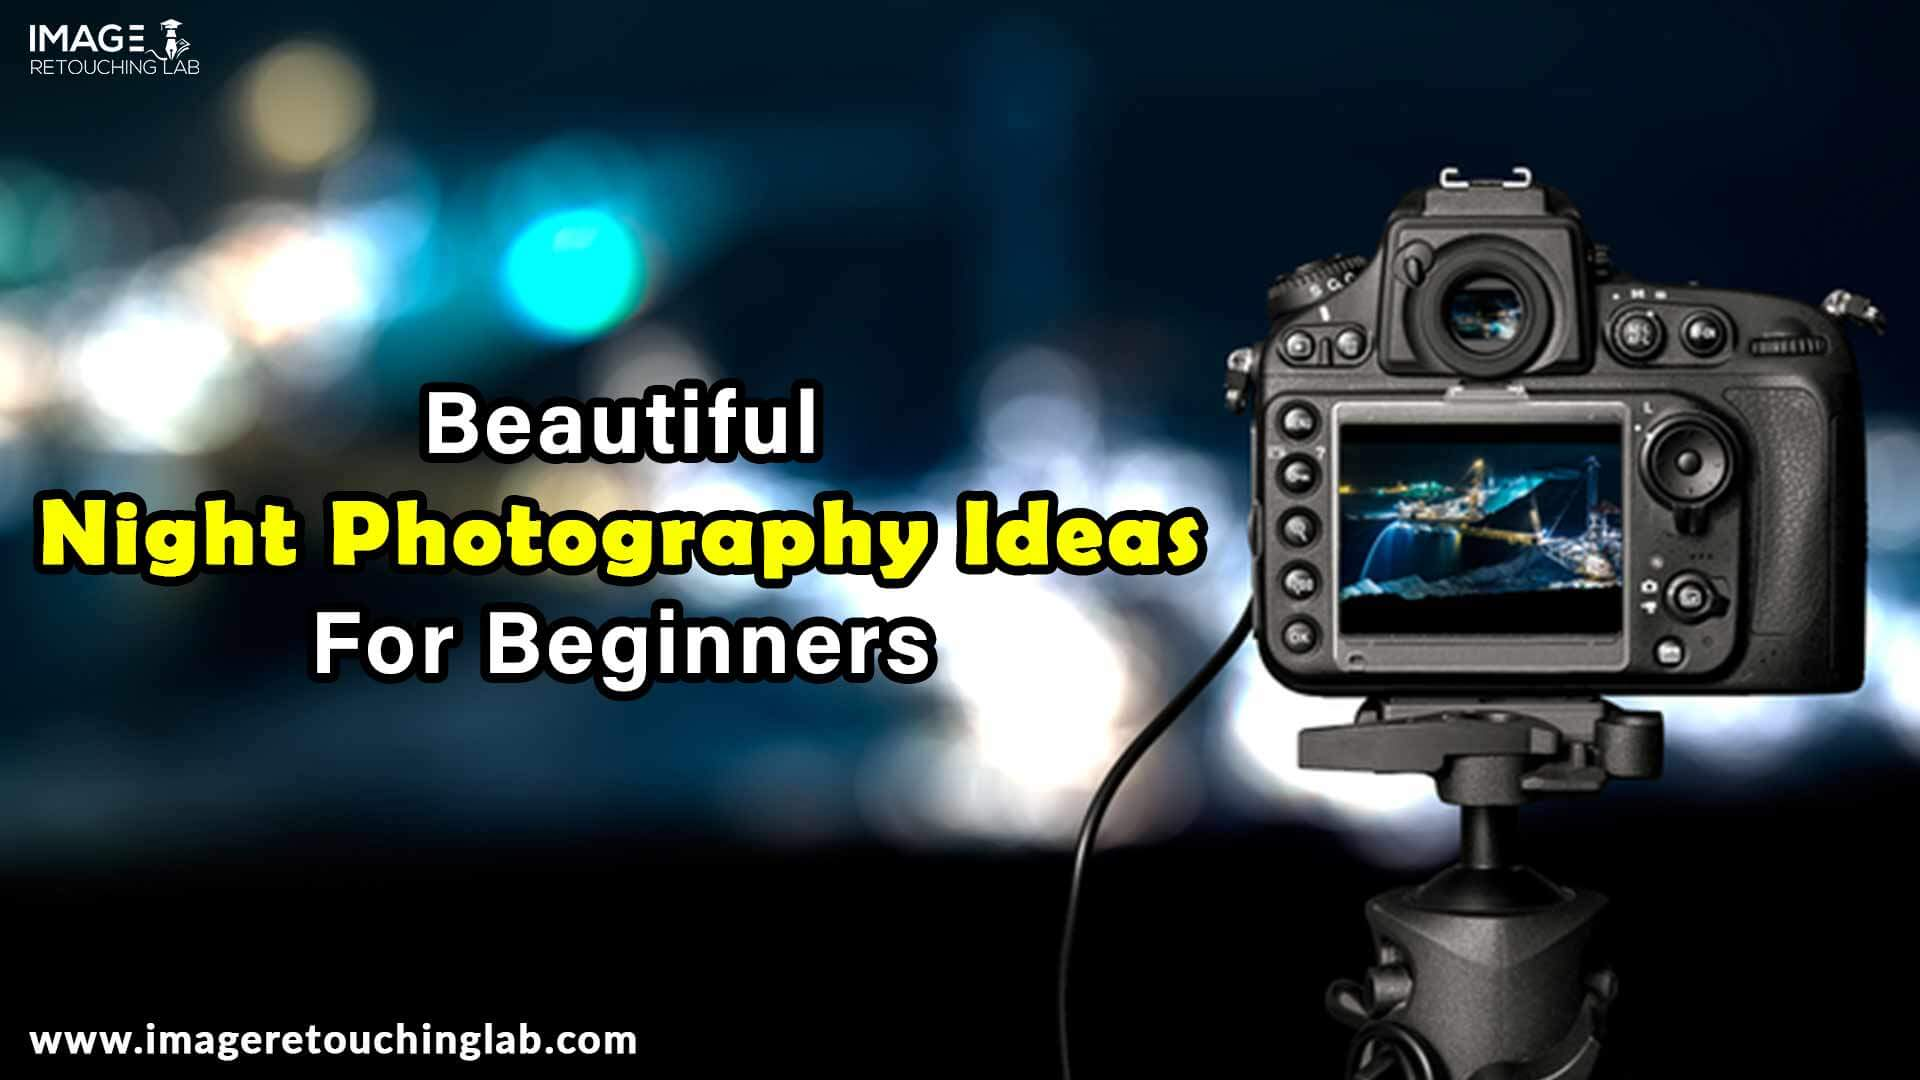 Beautiful Night Photography Ideas For Beginners